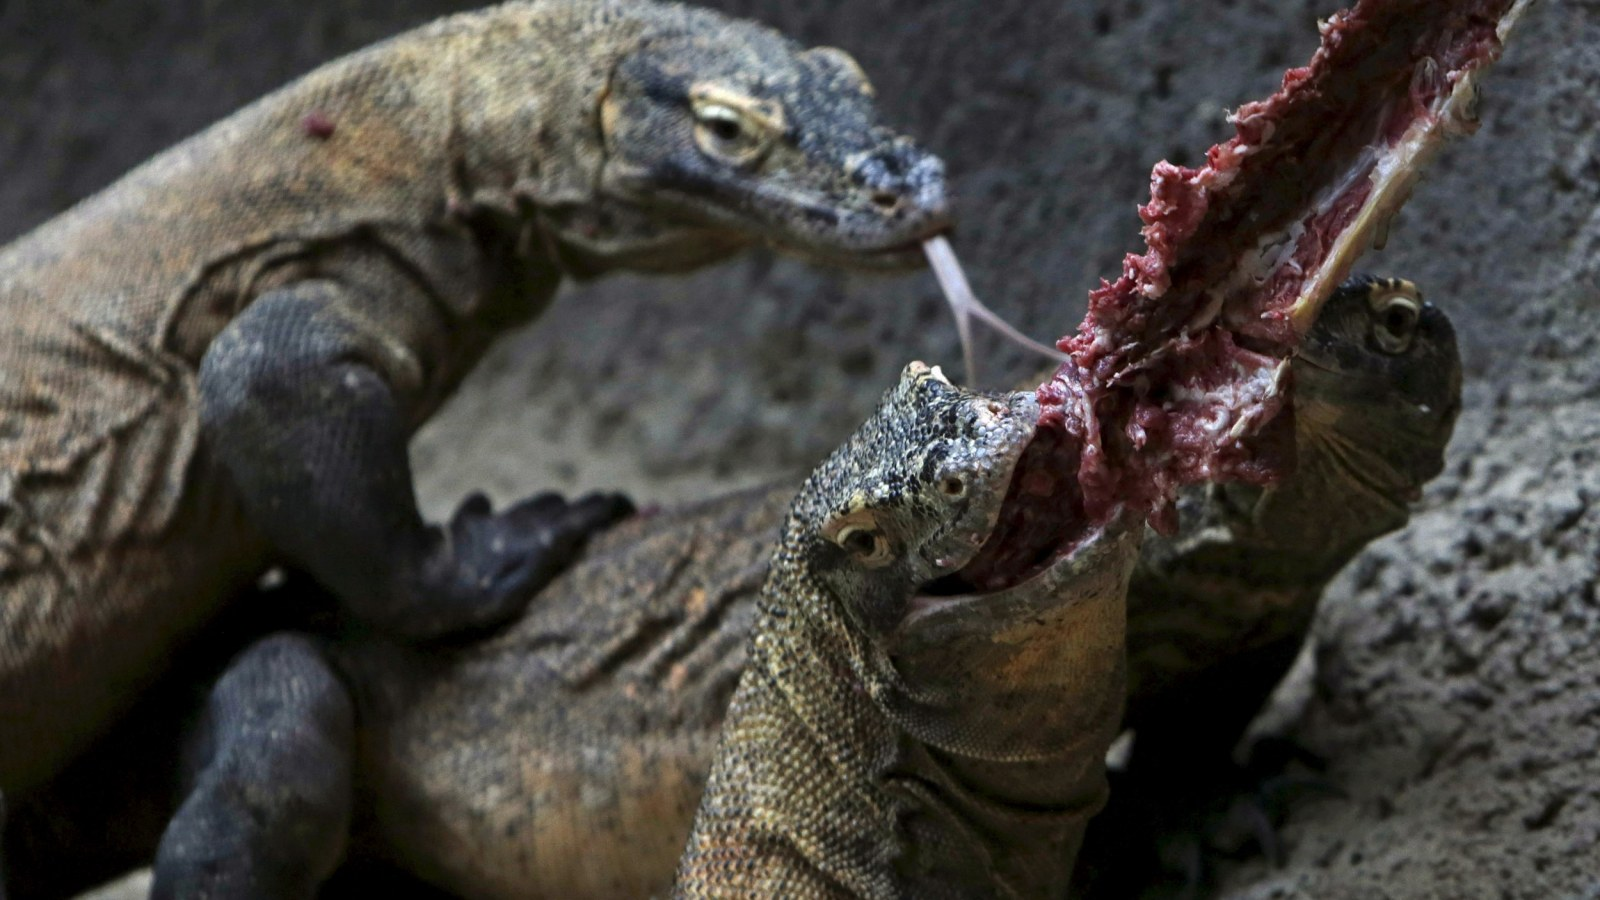 Komodo Dragon Bites Tourist In First Attack On Humans In Five Years